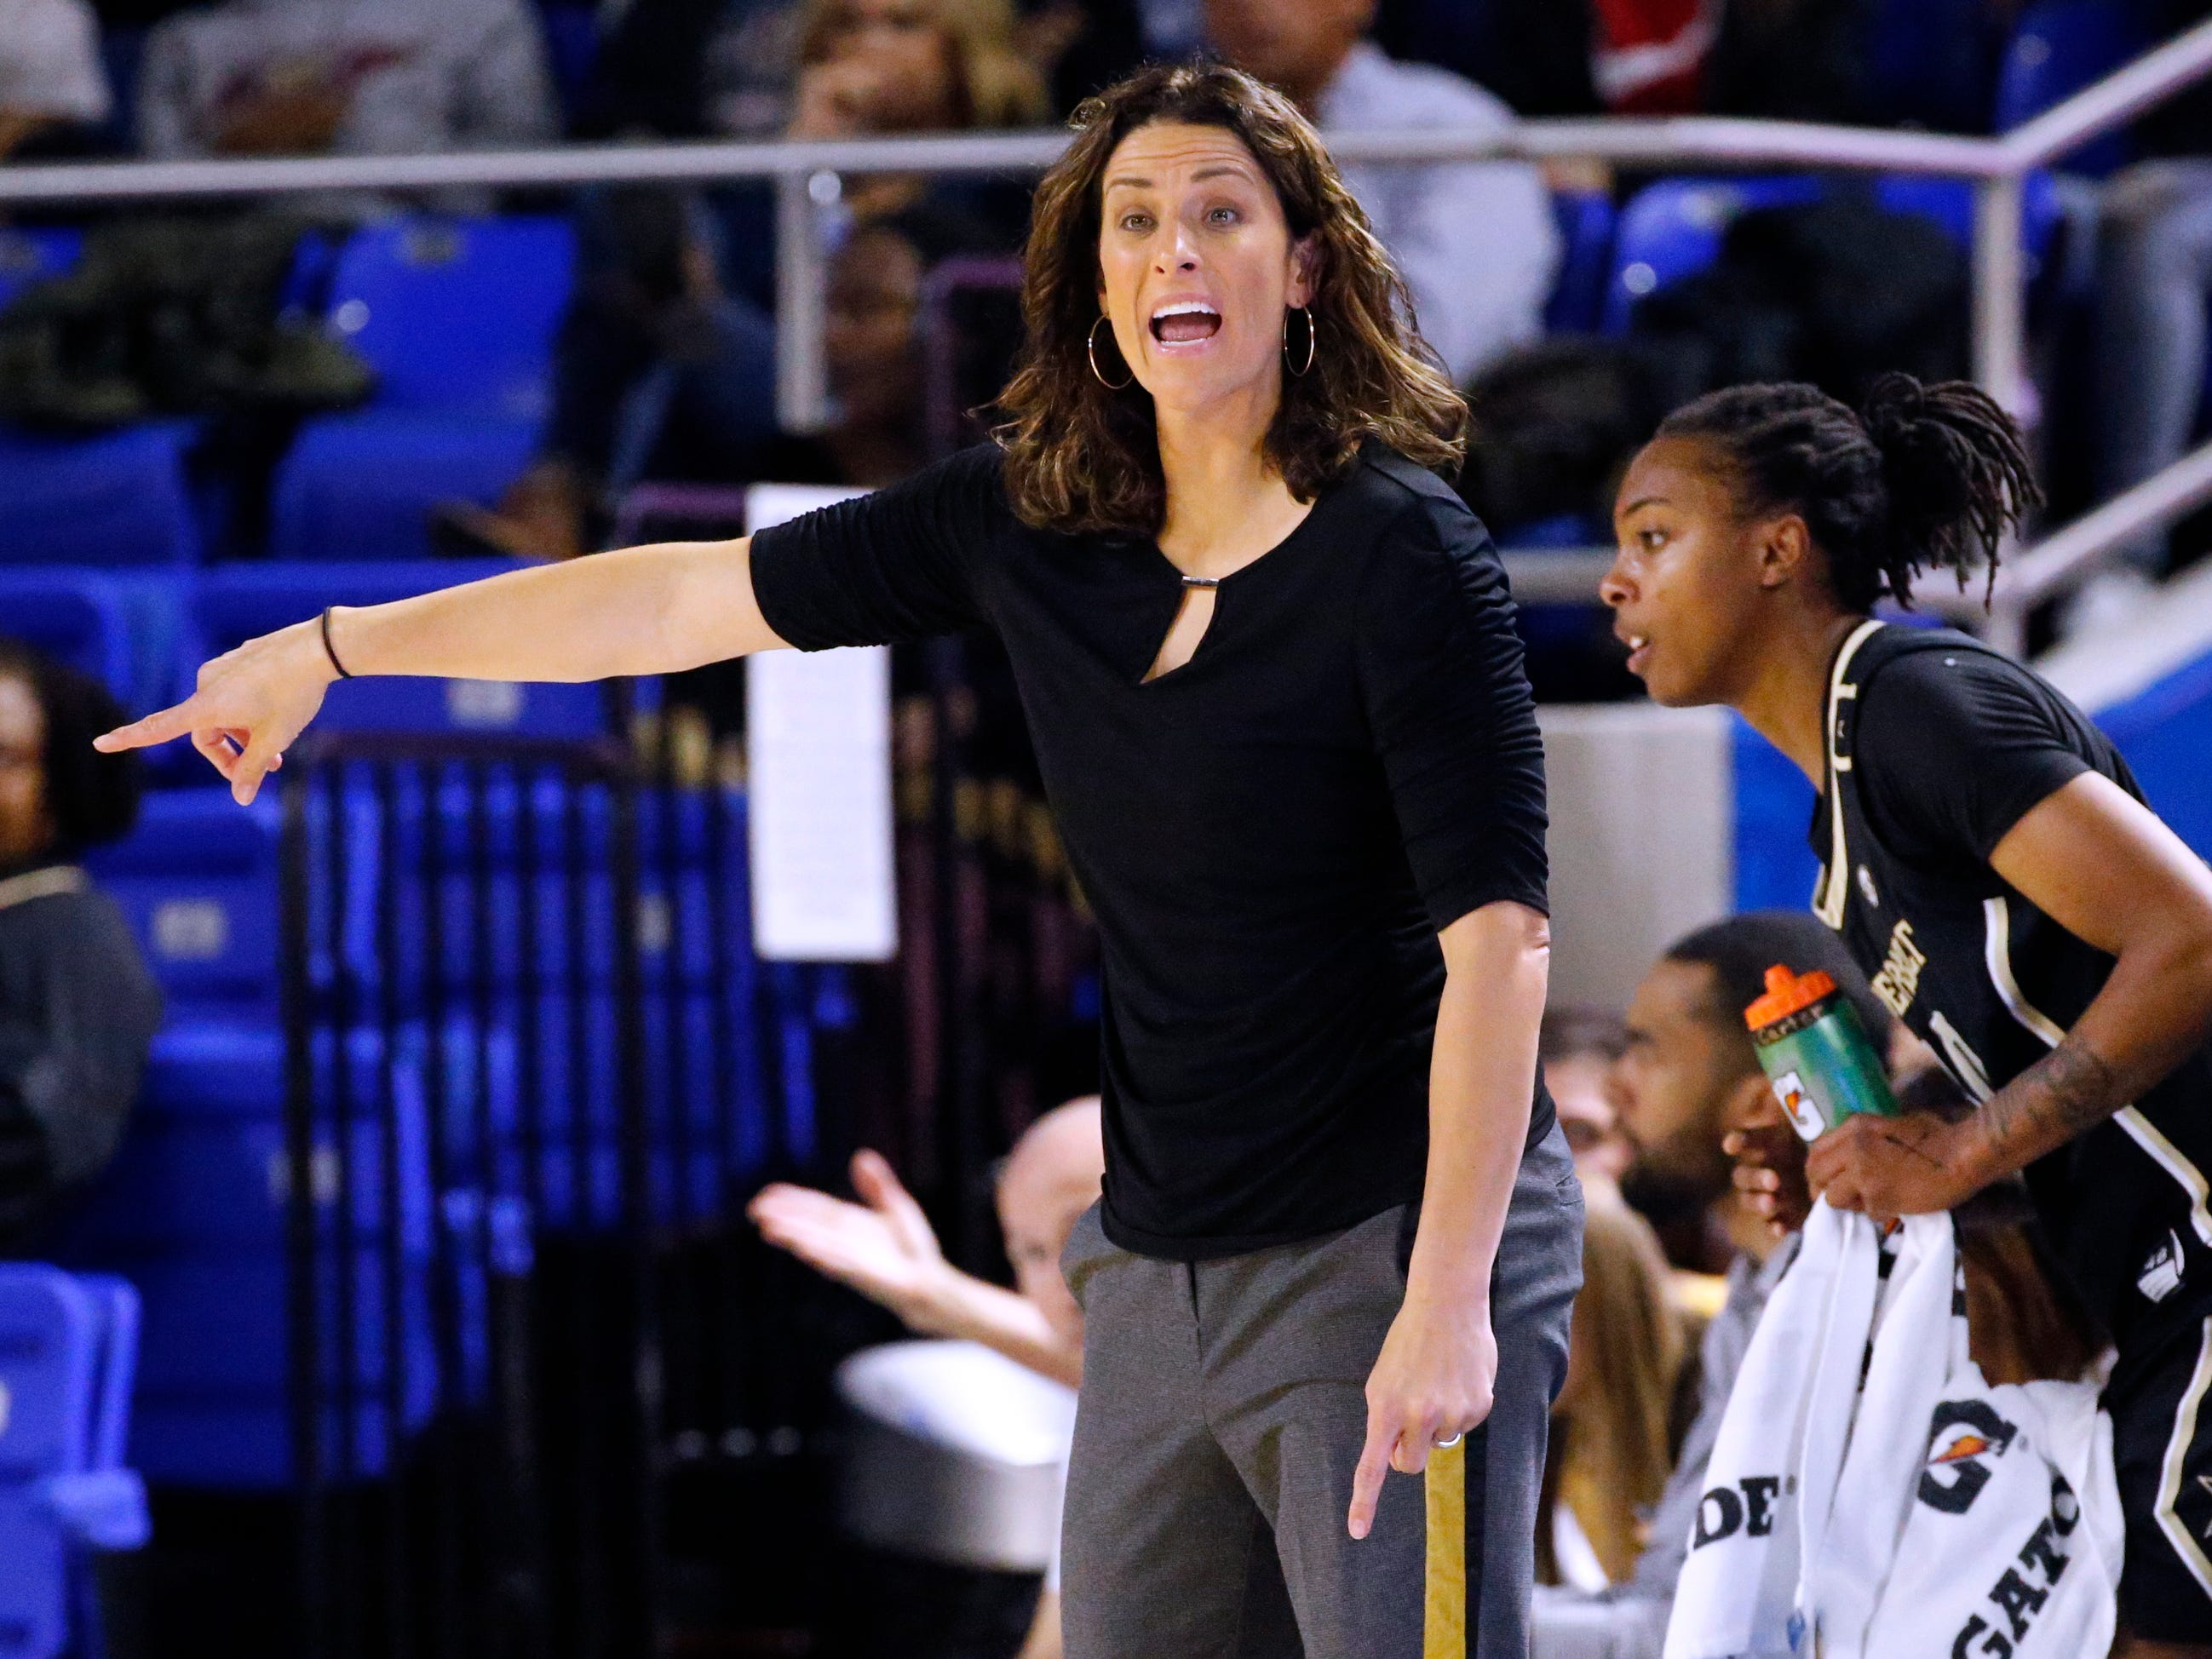 Vanderbilt's head coach Stephanie White instructs players on the sidelines during MTSU women's home opening game at MTSU on Friday, Nov. 8, 2018.